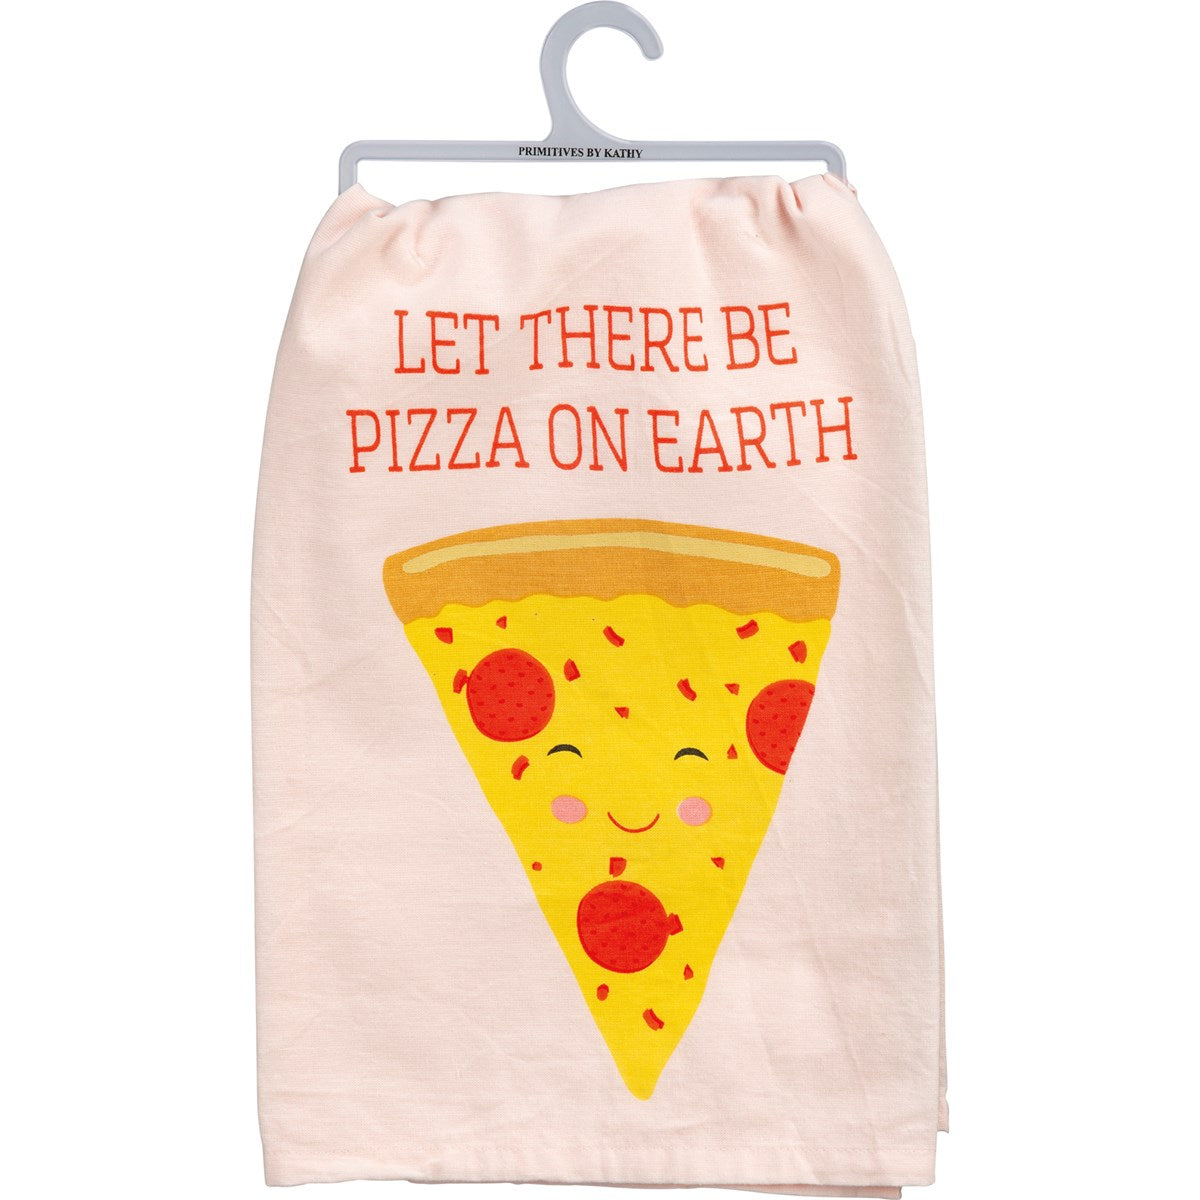 Primitives by Kathy - Let There Be Pizza On Earth Dishtowel